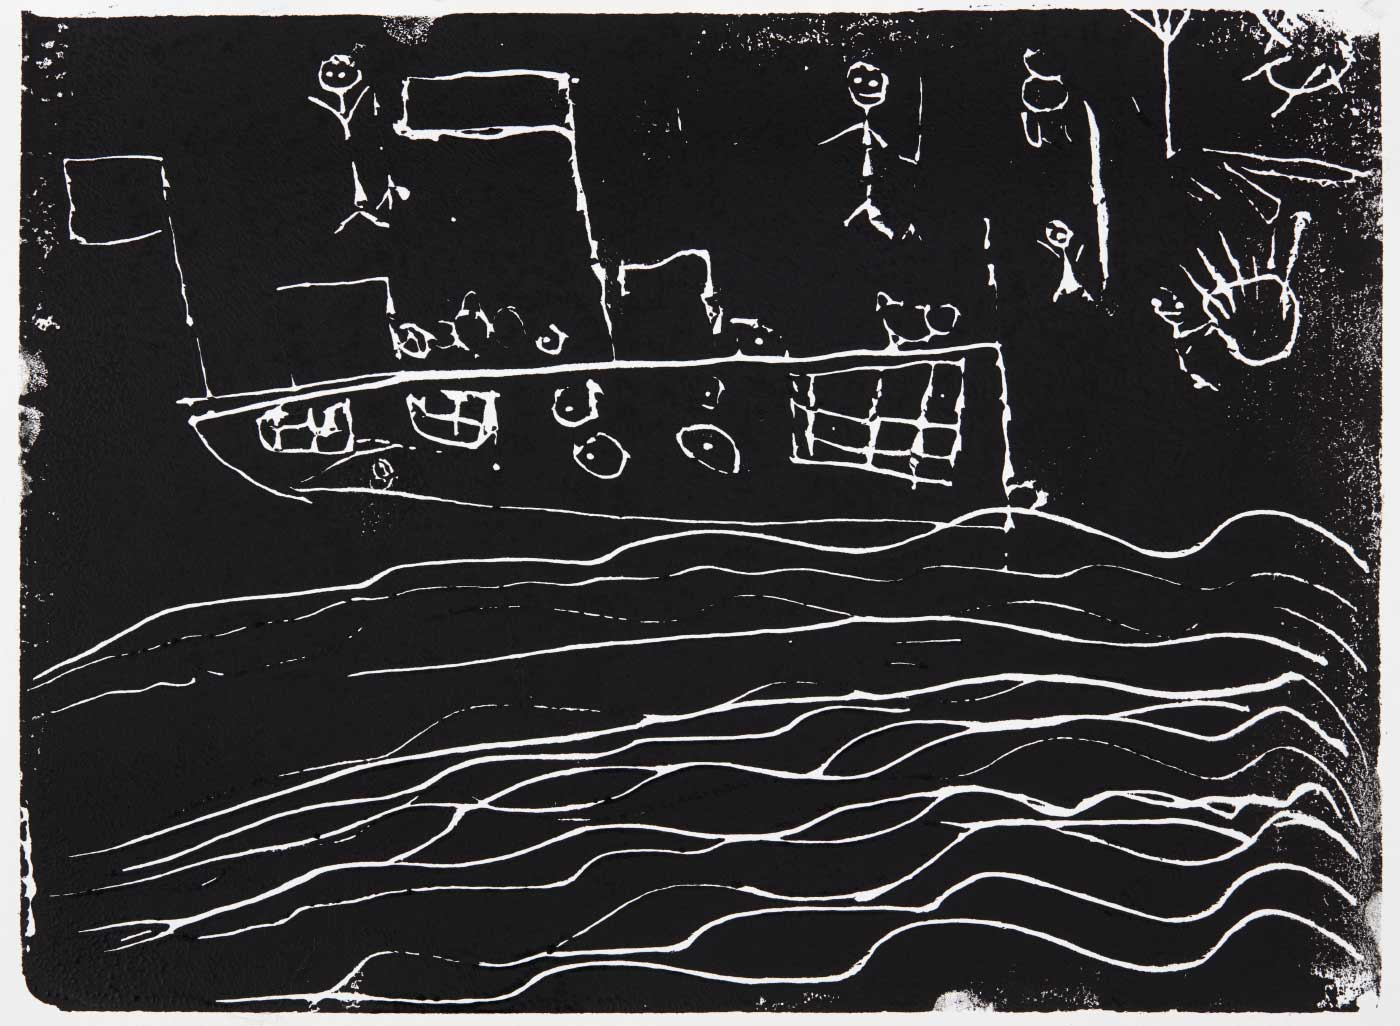 Print, black ink on white paoer, depicting a boat on water and figures on the shore. Annotated in pencil 'Jack'. - click to view larger image